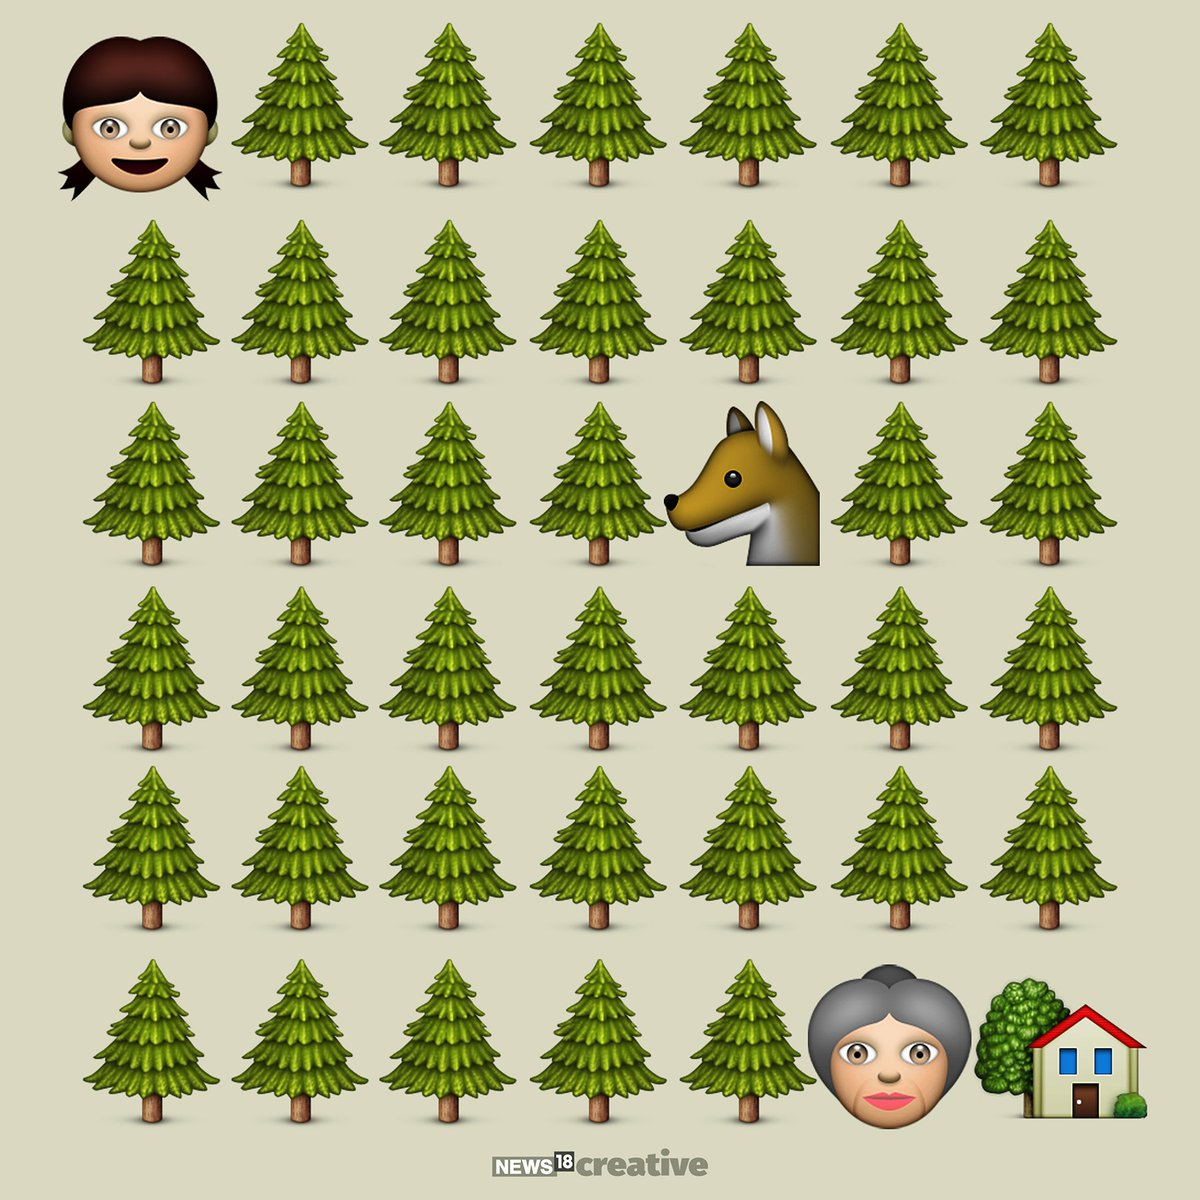 News18 Graphics On Twitter Stories In Emojis Little Red Riding Hood Worldemojiday